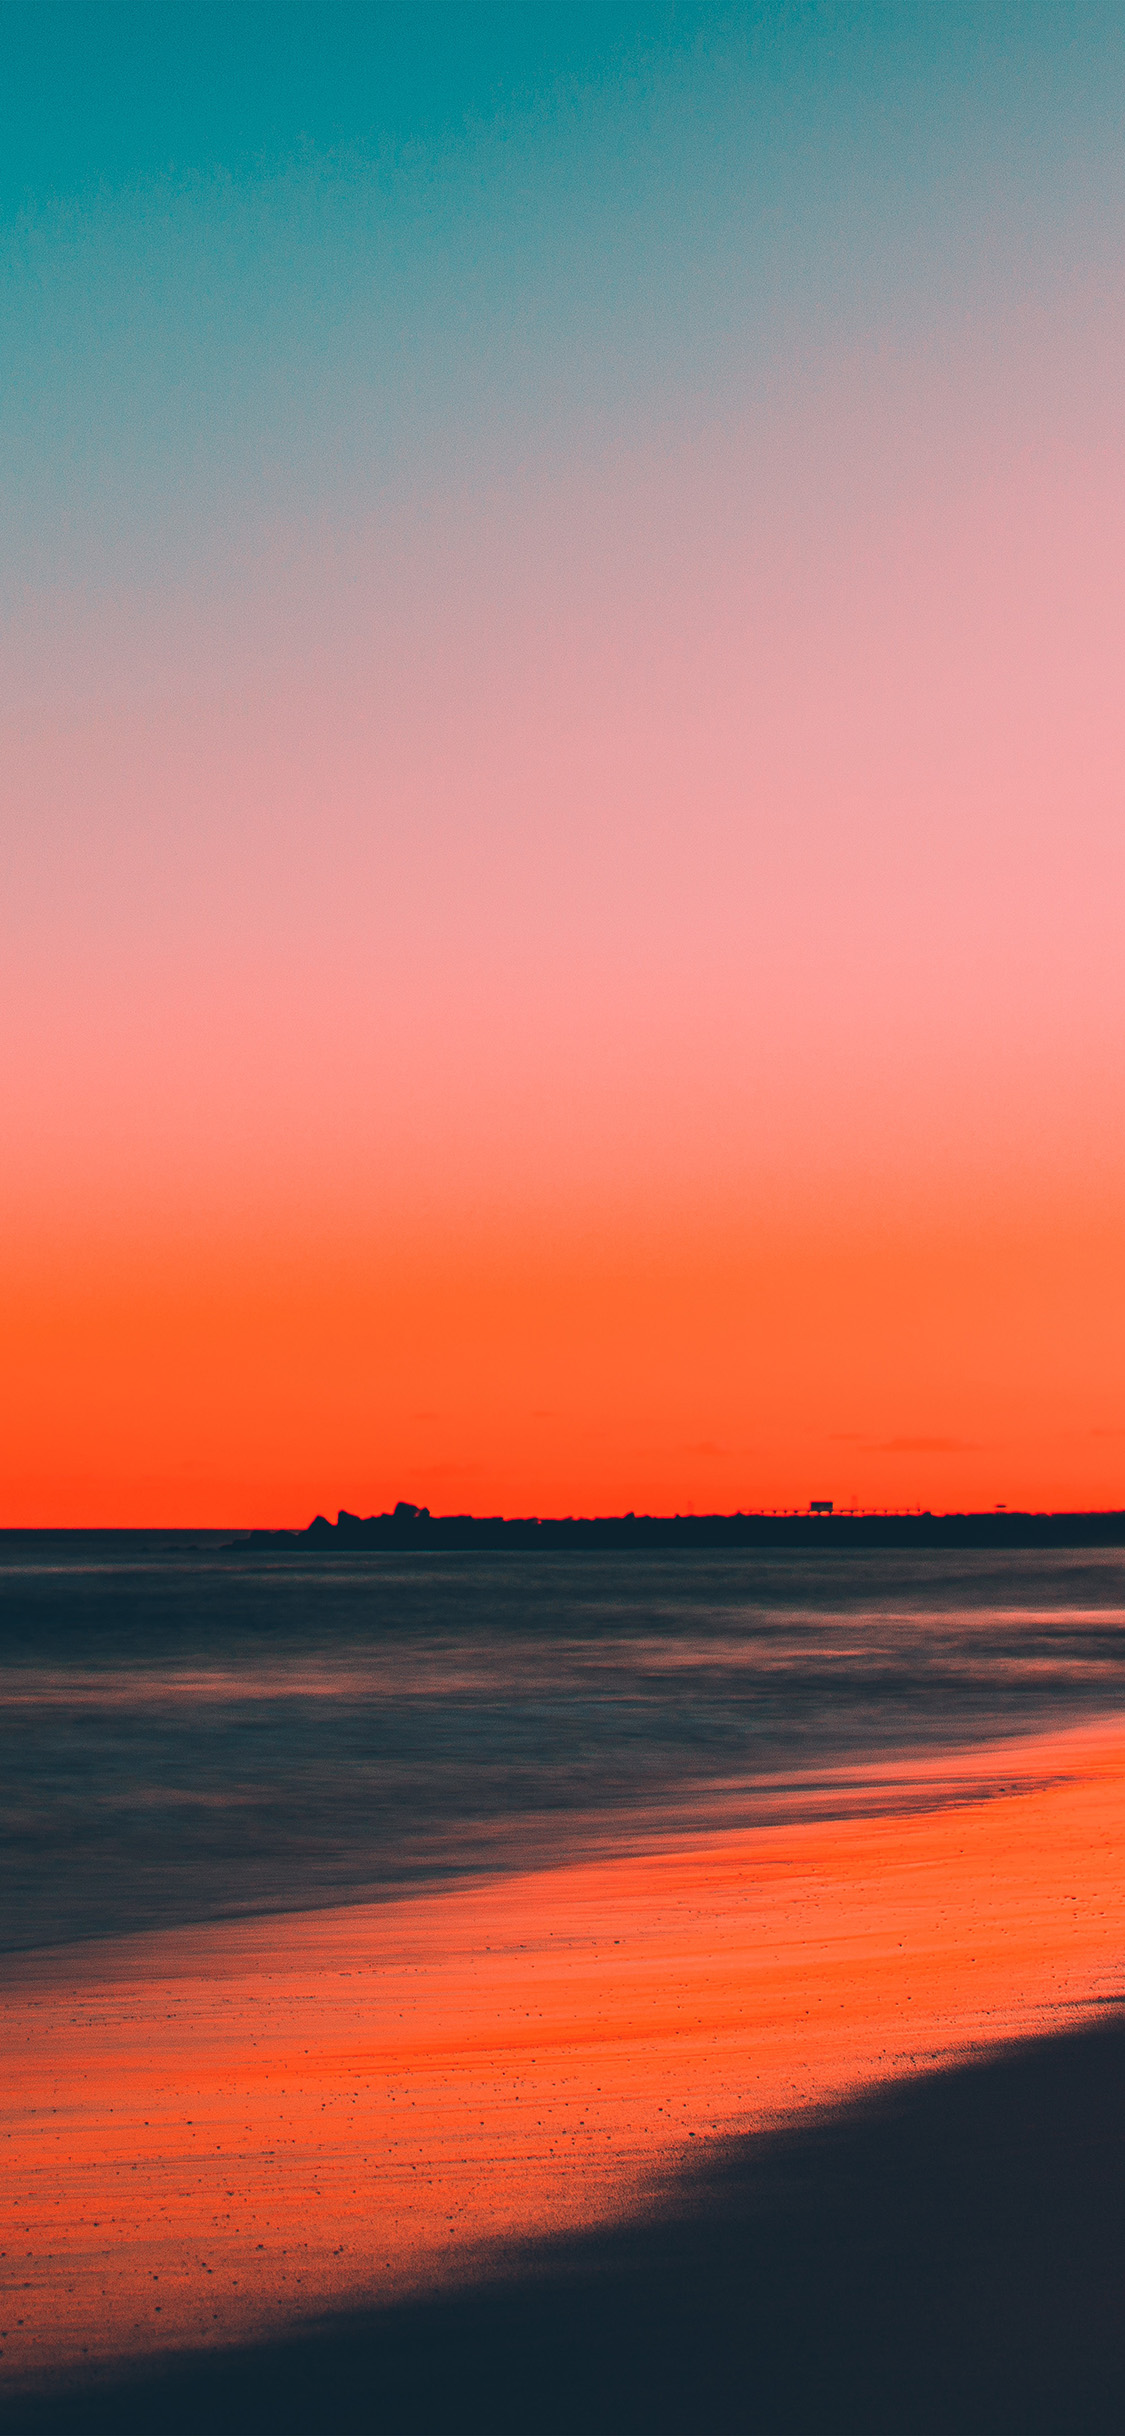 Sunset Beach Iphone X Wallpapers Free Download